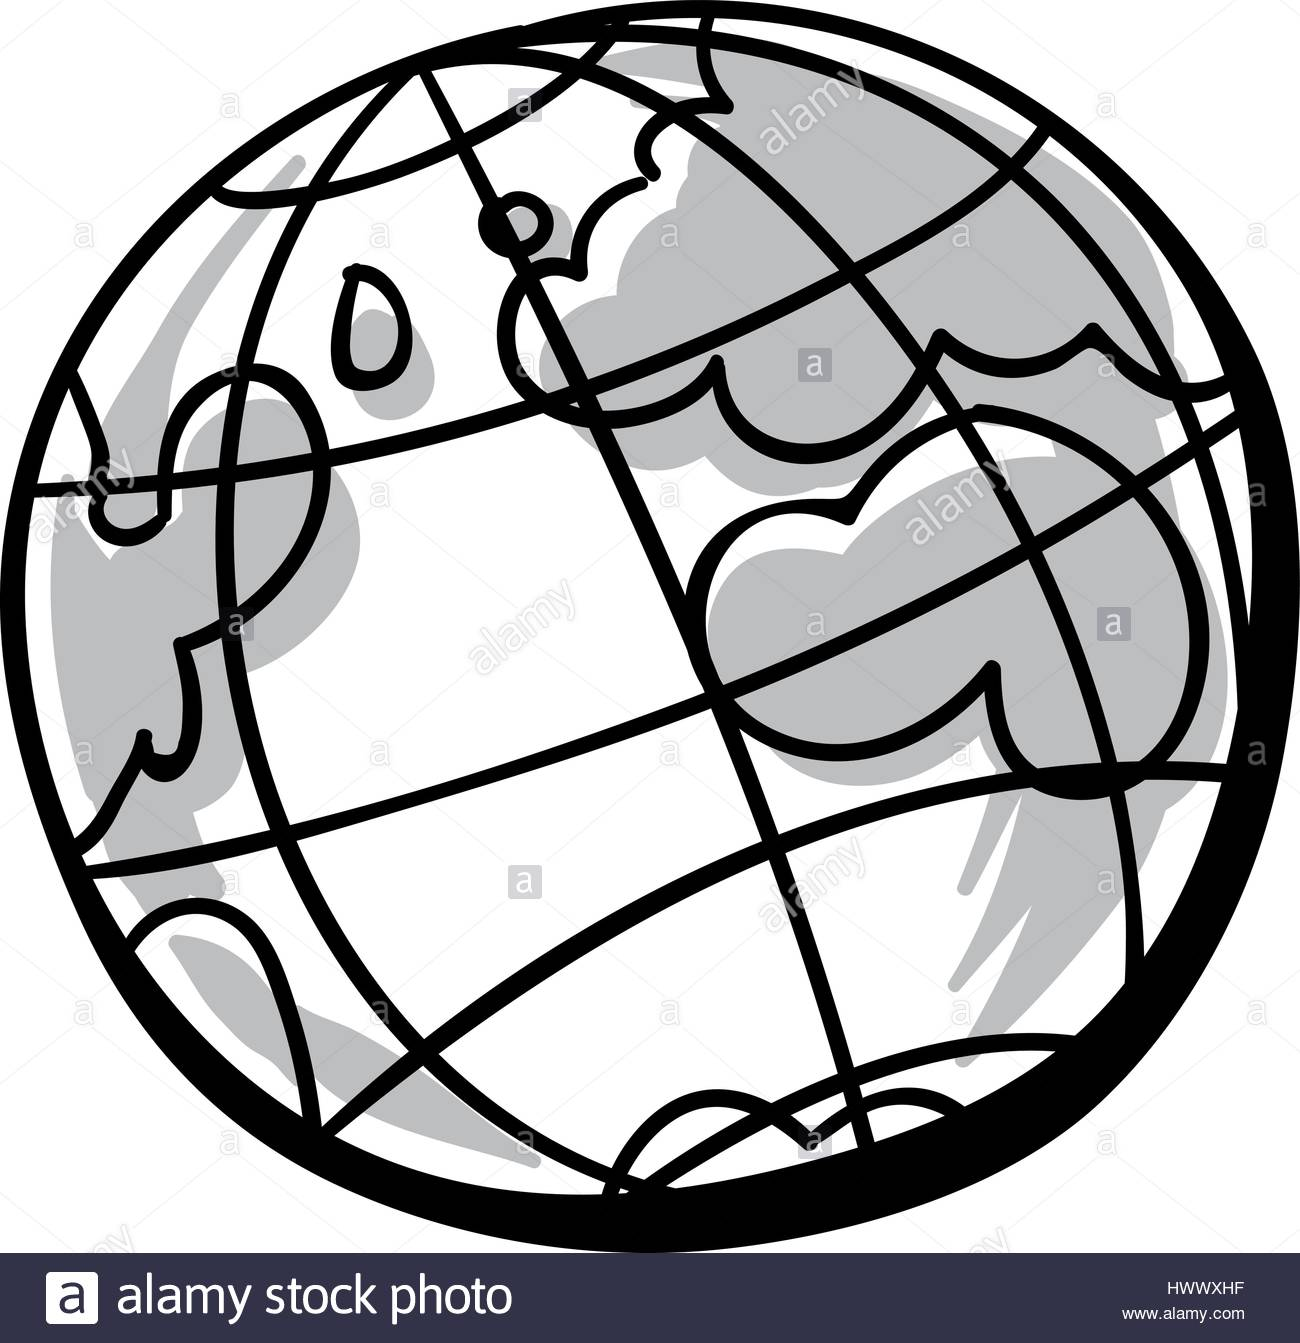 1300x1343 A small, black and white cartoon globe icon Stock Vector Art